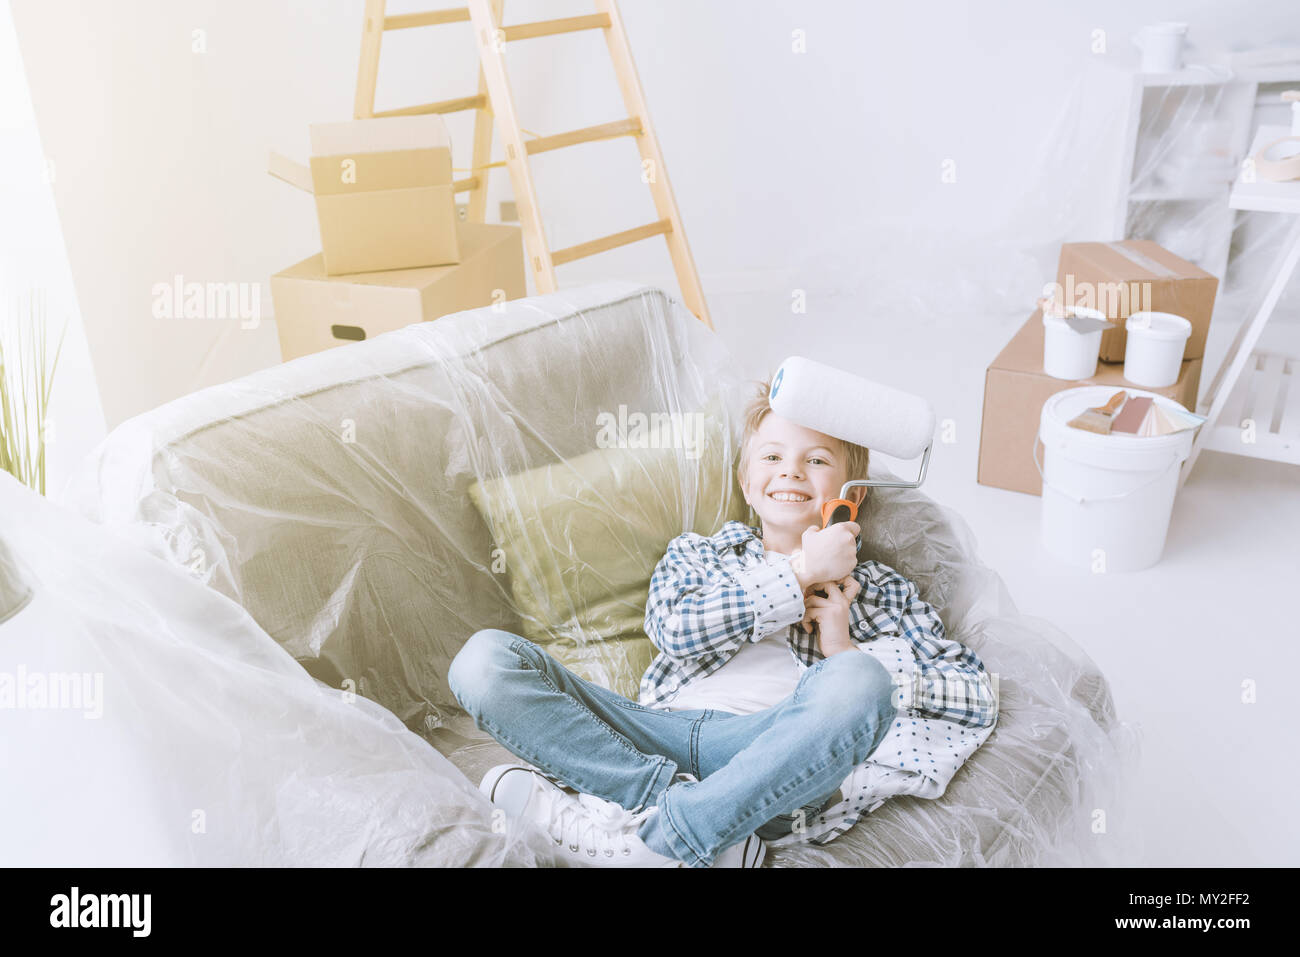 Boy sitting on an armchair covered with a protective plastic sheet and holding a paint roller, home improvement and renovation concept - Stock Image